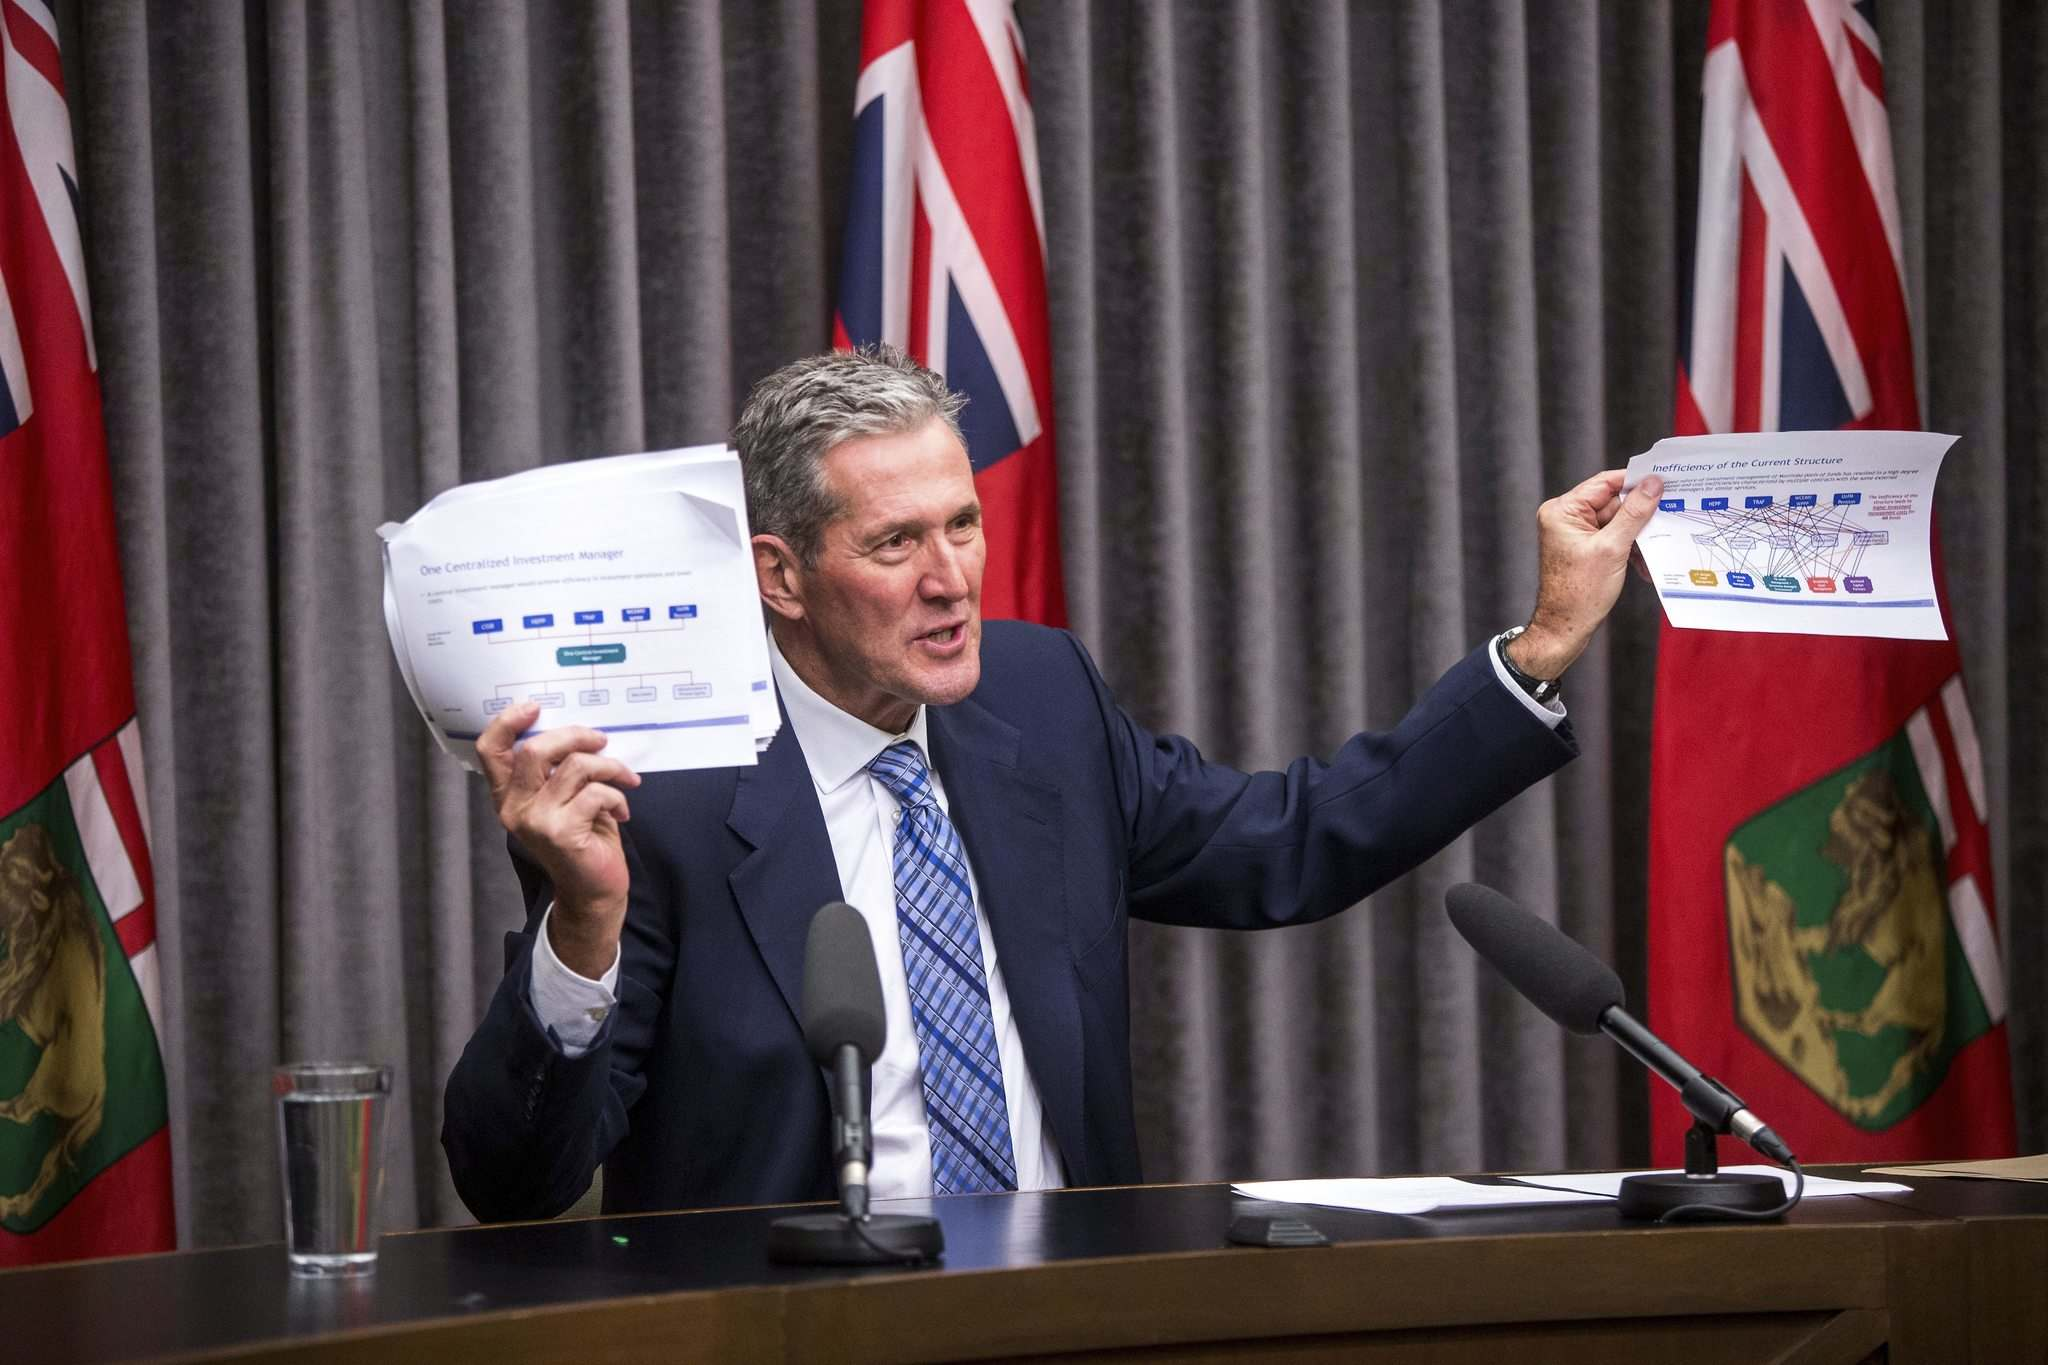 """""""So I see this as an opportunity to our public-sector pension fund managers to work together to end this inefficiency. And I'm asking them to develop a plan so that we can reduce the fees that we're currently paying to managers in places like Toronto and New York, and work together to purchase management services as a group,"""" Premier Brian Pallister said. (Mikaela MacKenzie / Winnipeg Free Press)"""